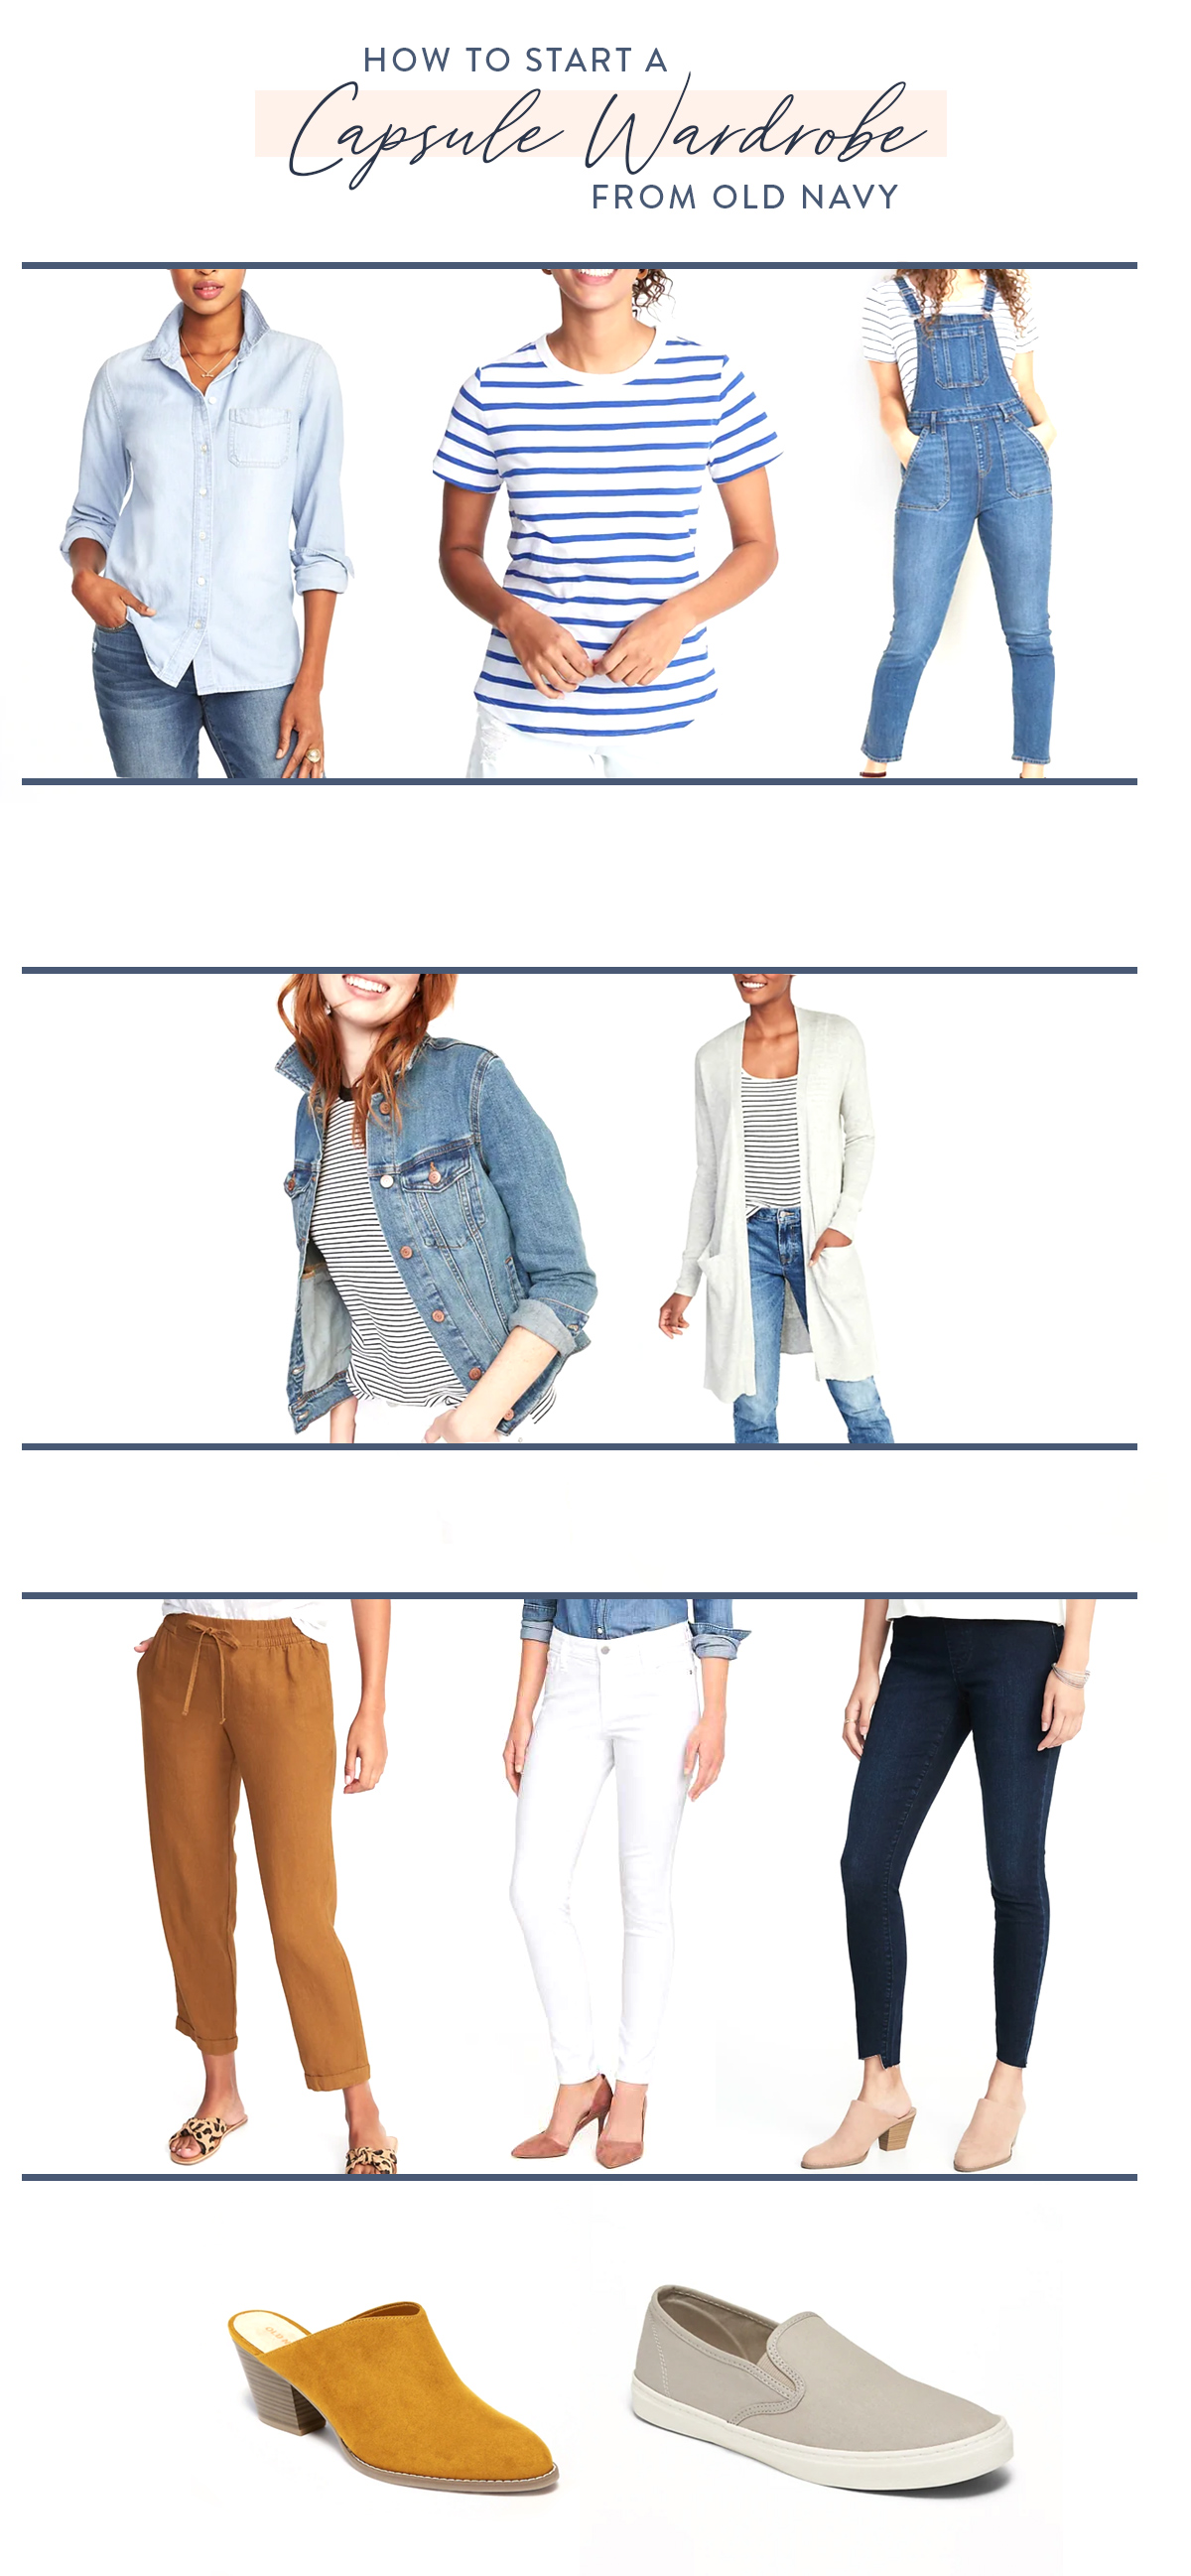 Capsule wardrobe from Old Navy